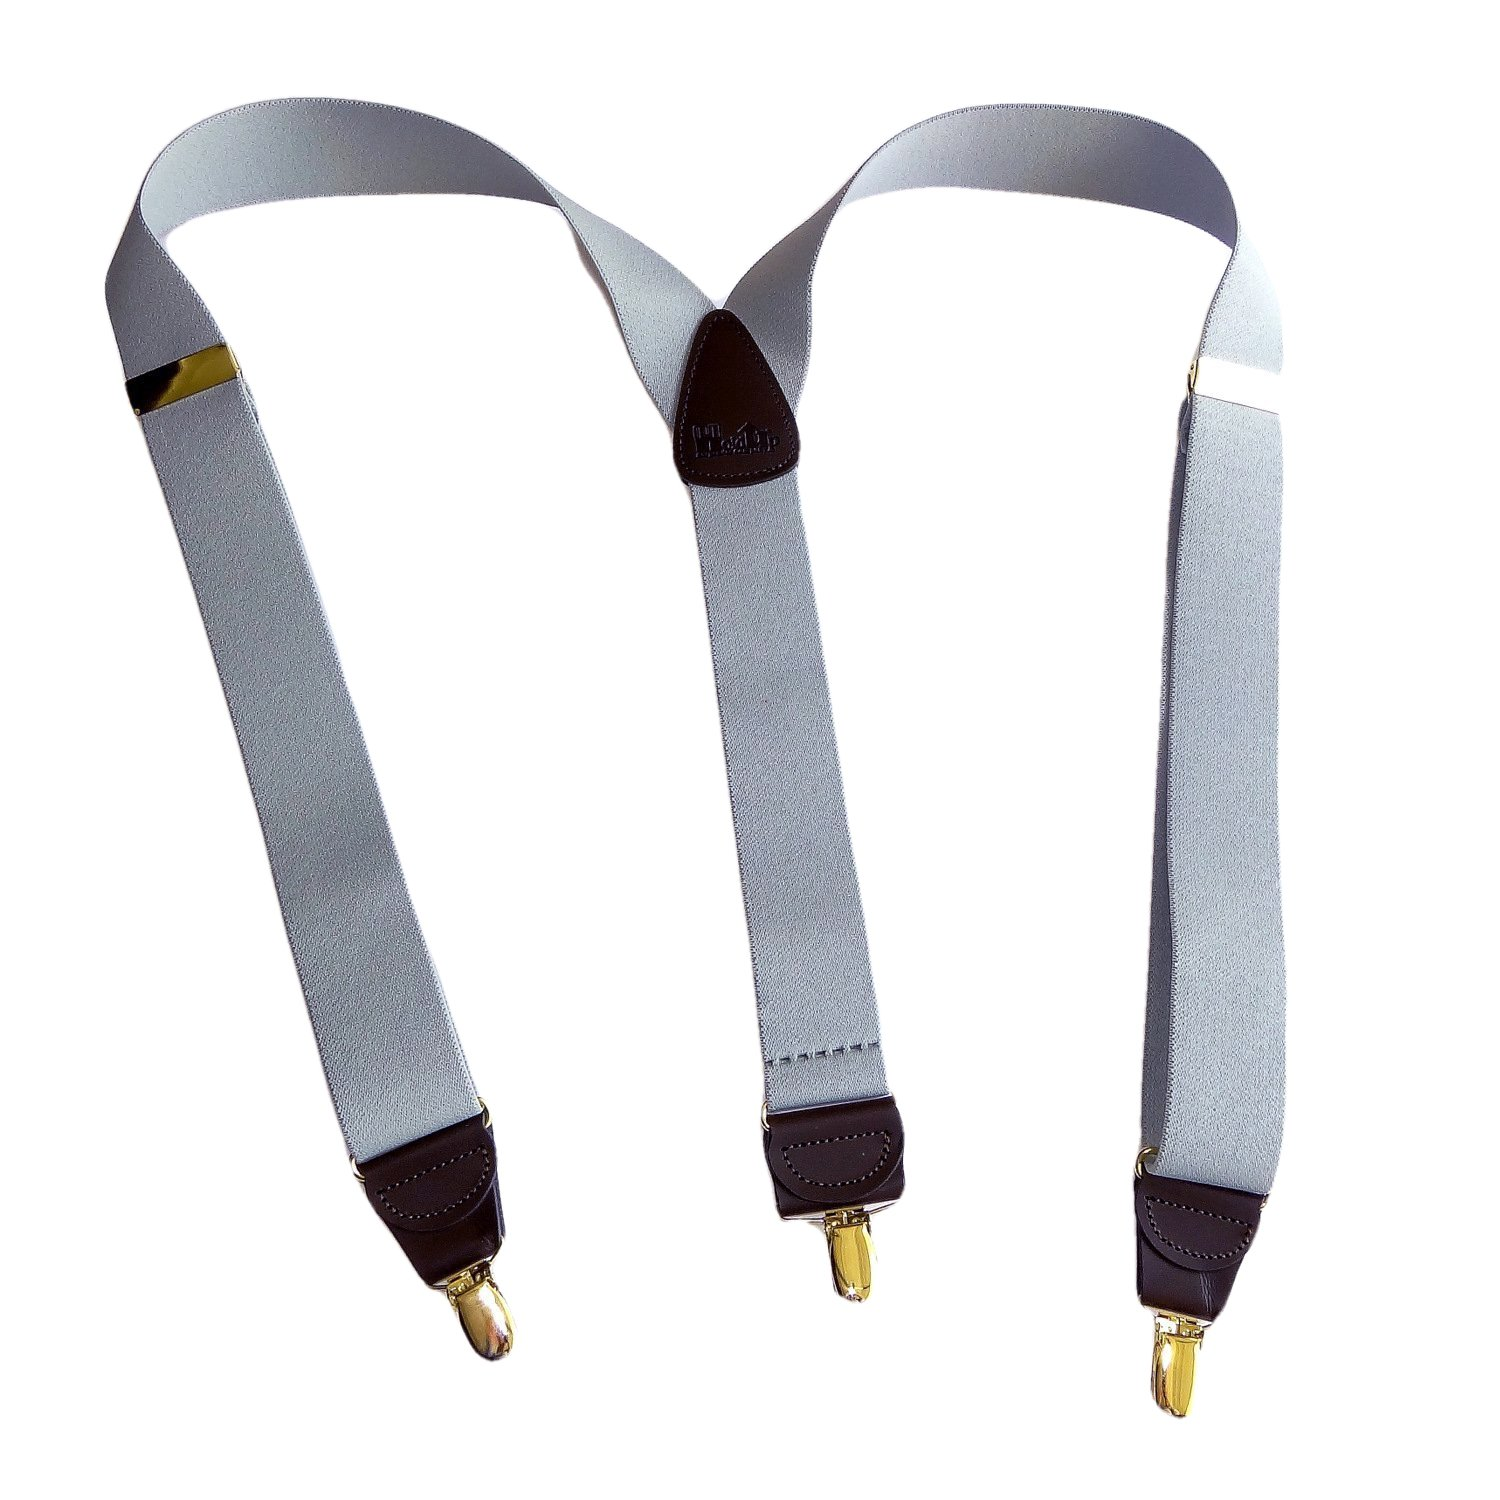 Holdup brand Silver Fox Light Gray 1 1/2'' wide Suspenders in Y-back with Goldtone no-slip Clips